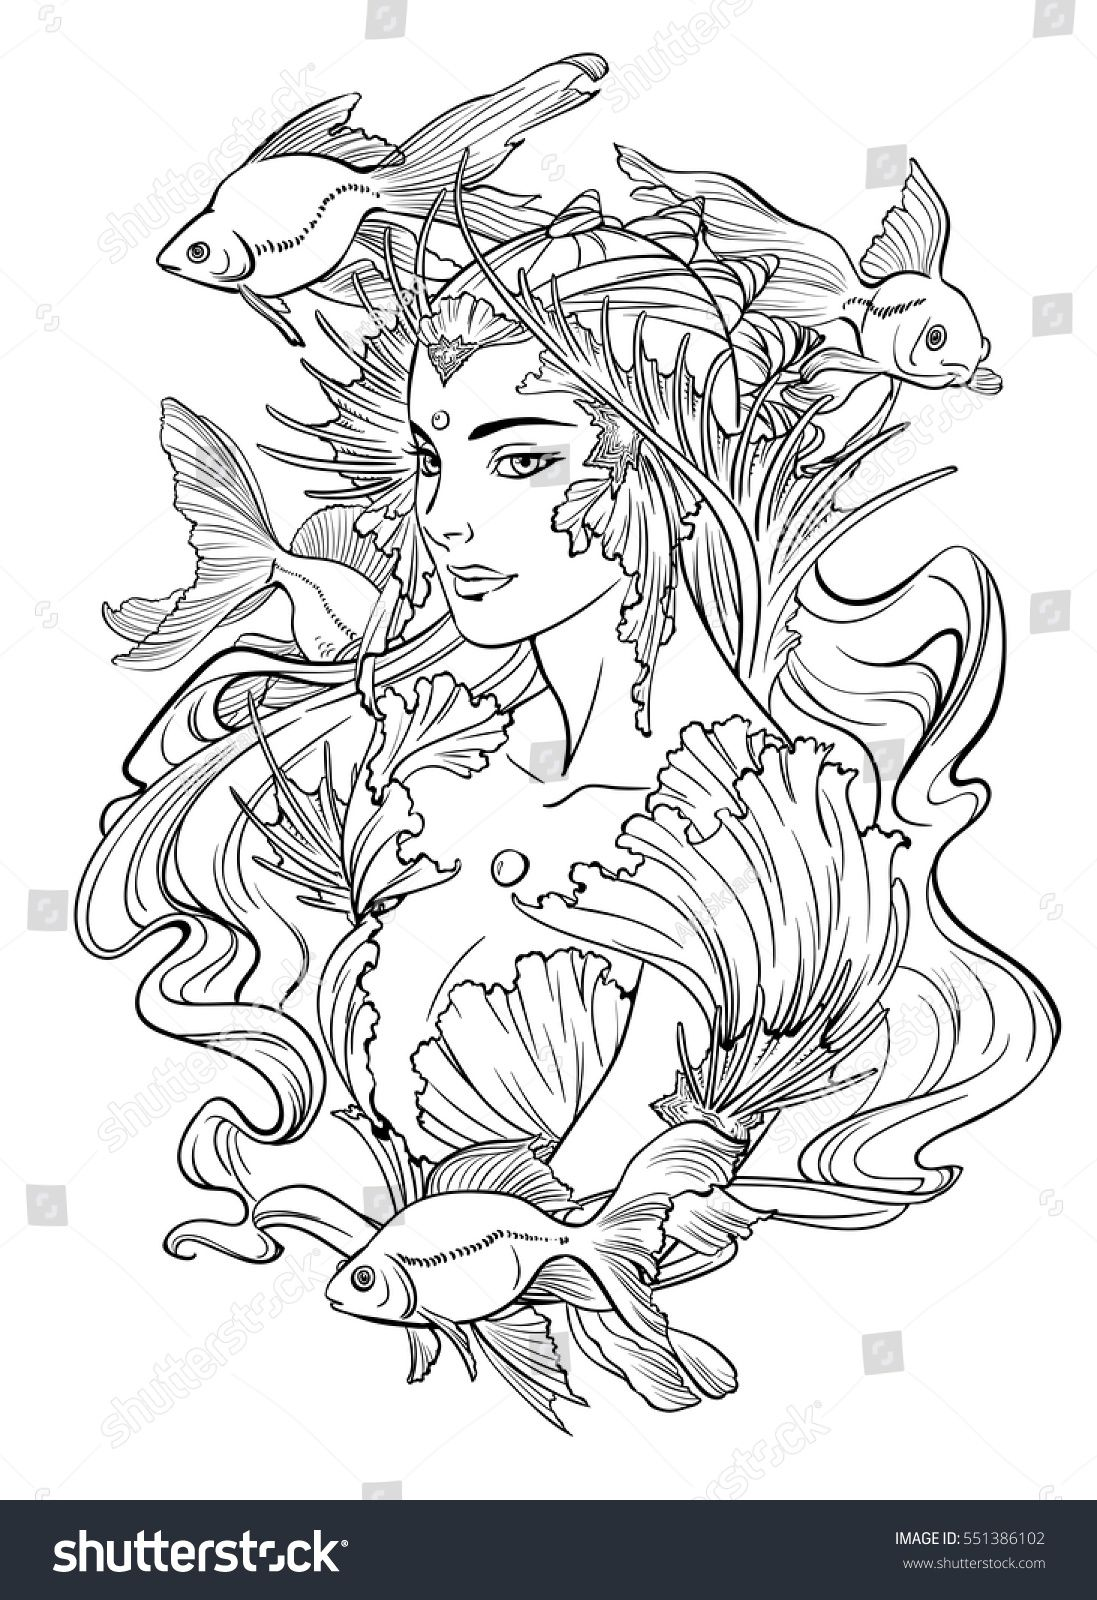 Illustration Of Mermaid Princess With Curled Hair Decorated With Seashell Elements And Goldfishes Fairy Coloring Pages Mermaid Coloring Pages Fairy Coloring [ 1600 x 1097 Pixel ]